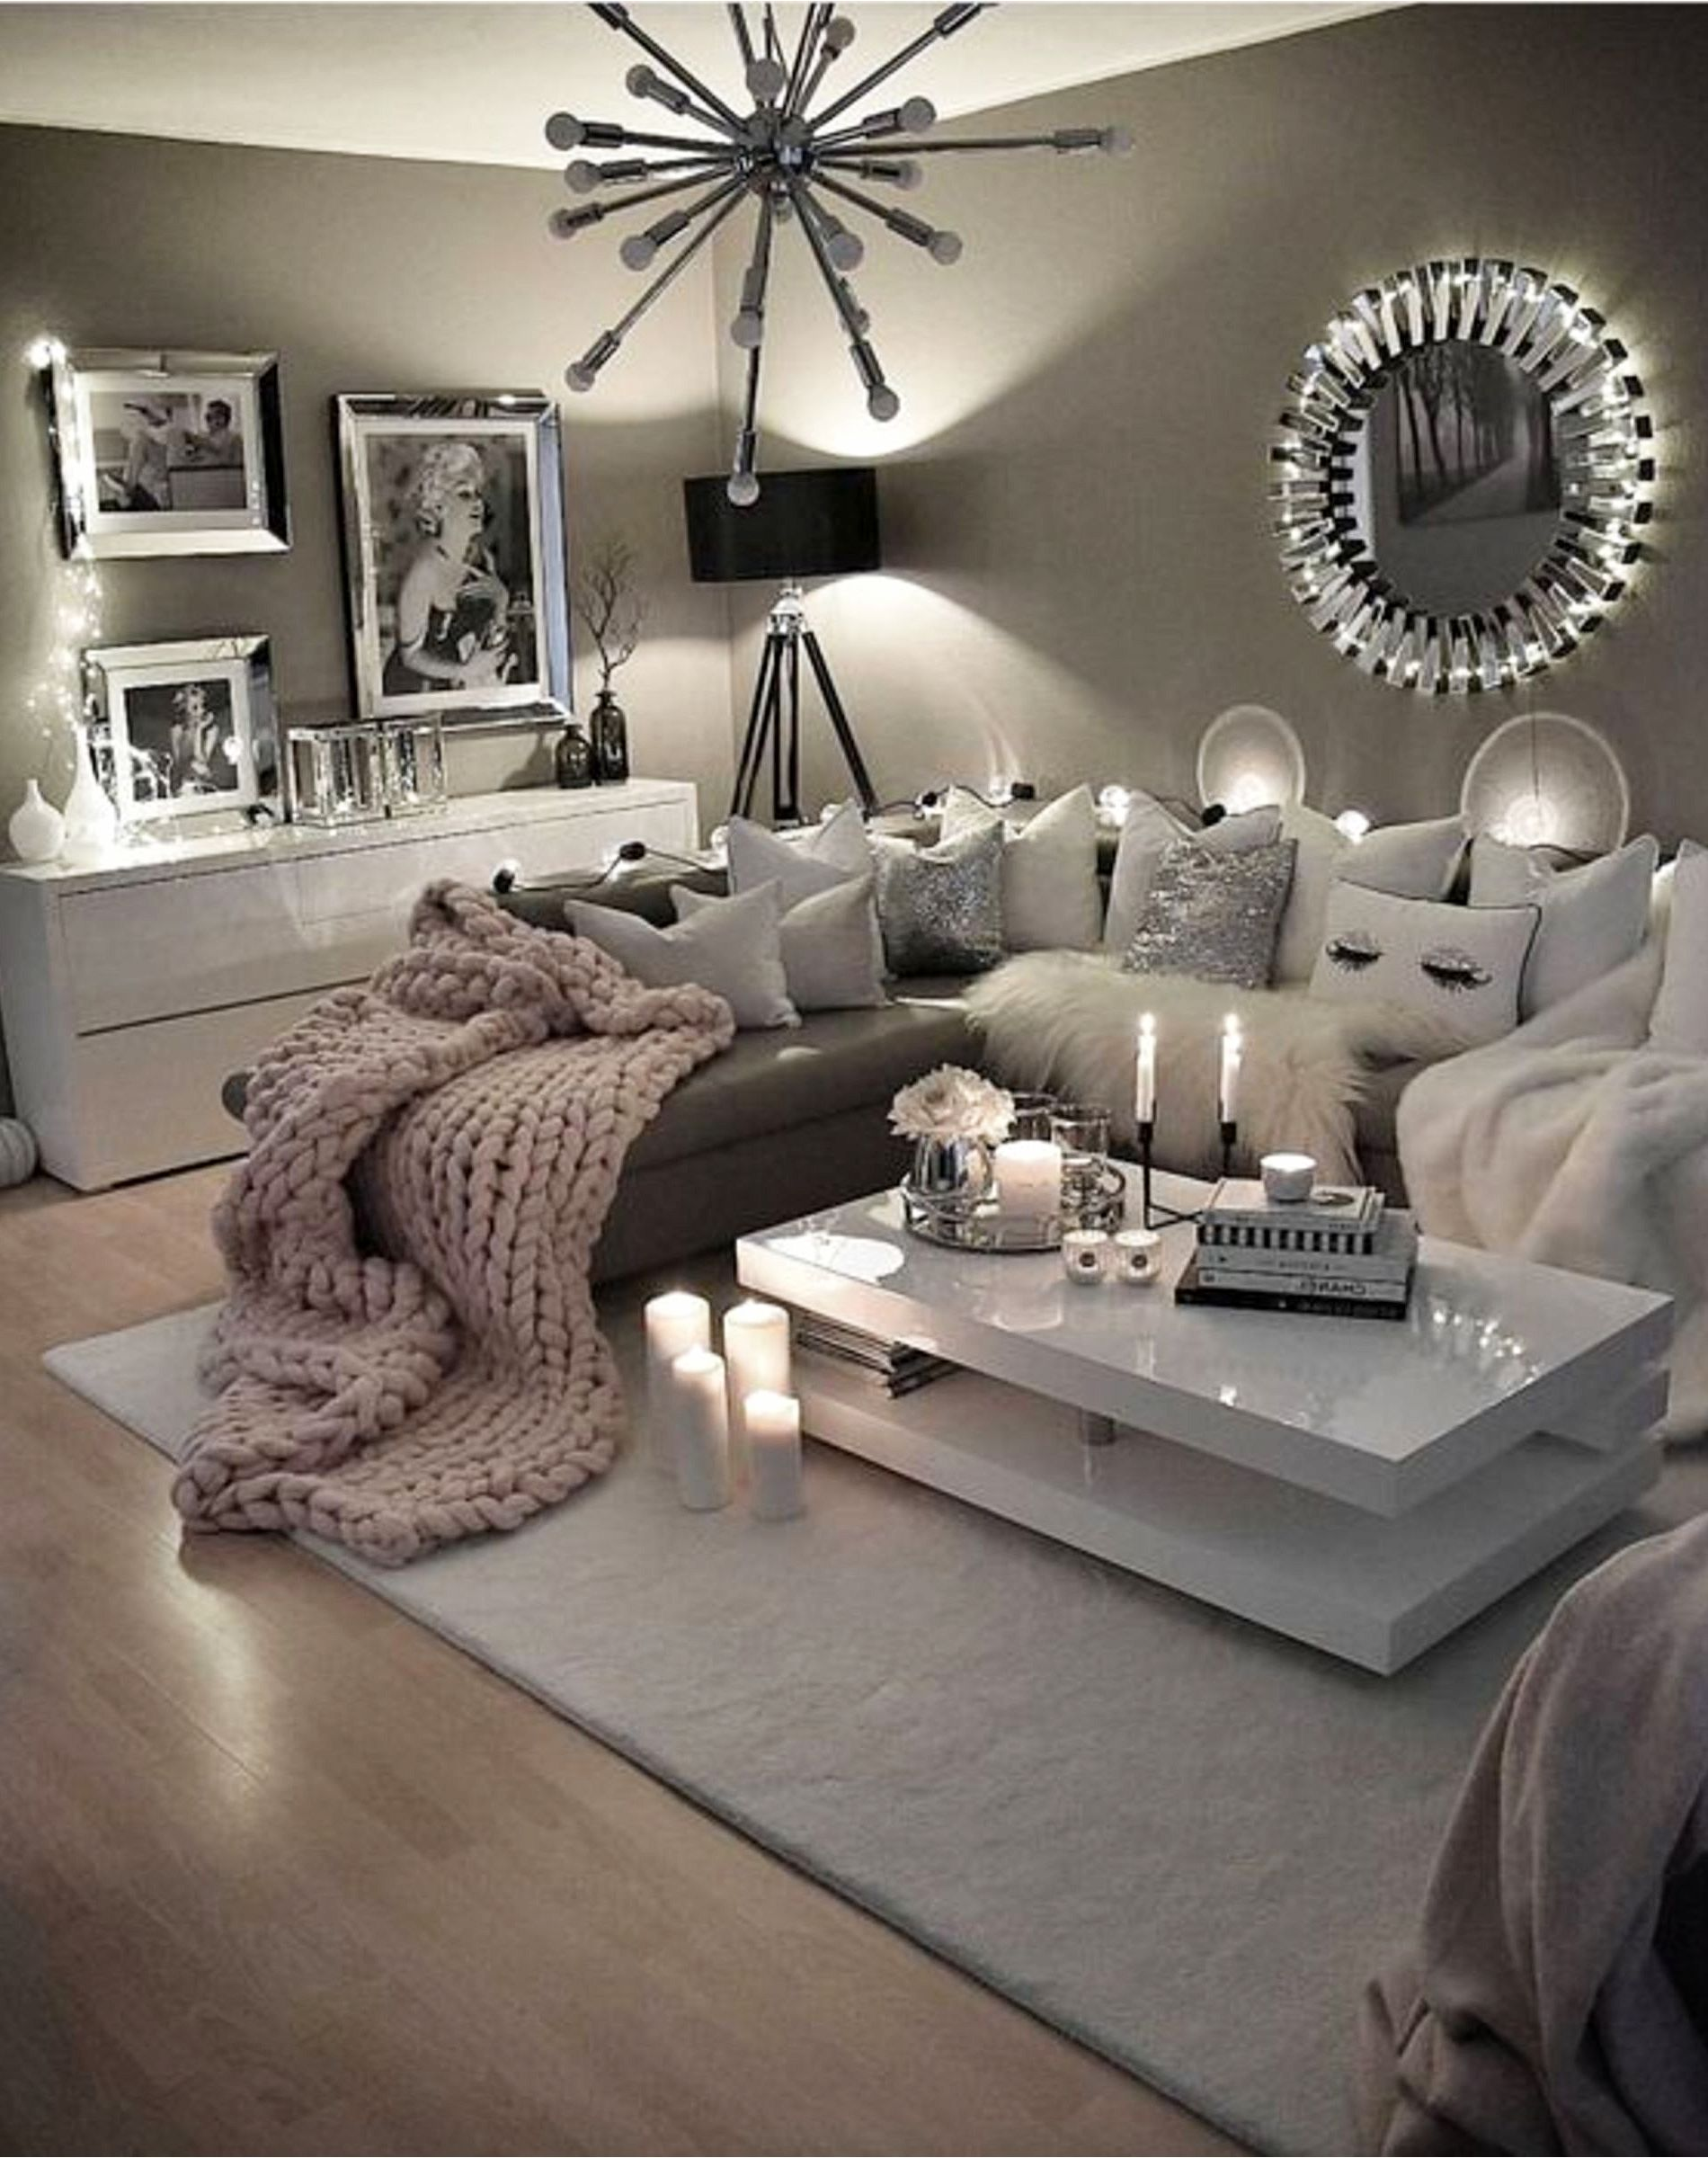 Neutral living room ideas earthy gray living rooms to - Decor ideas for living room apartment ...